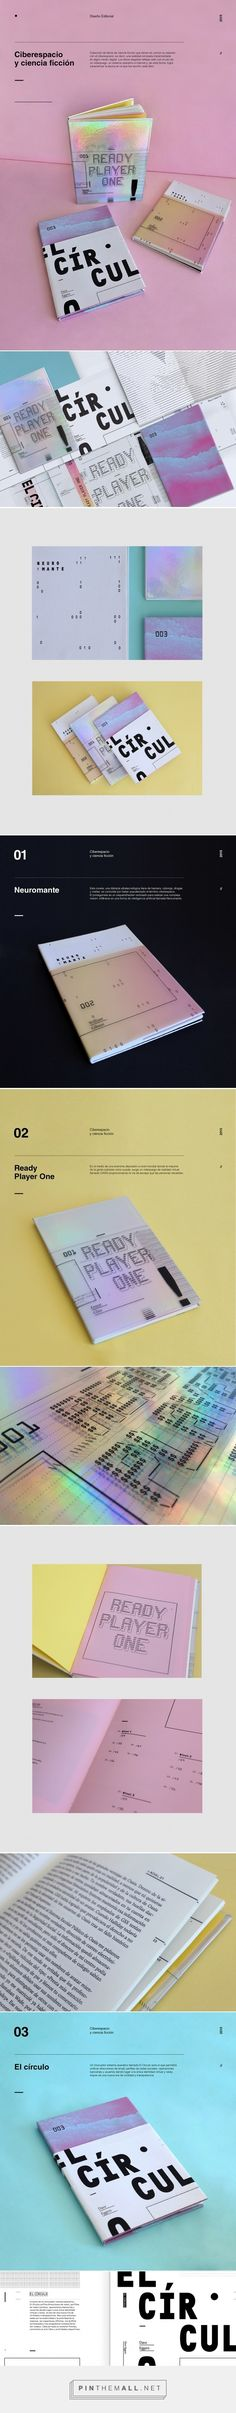 All and all on Designspiration